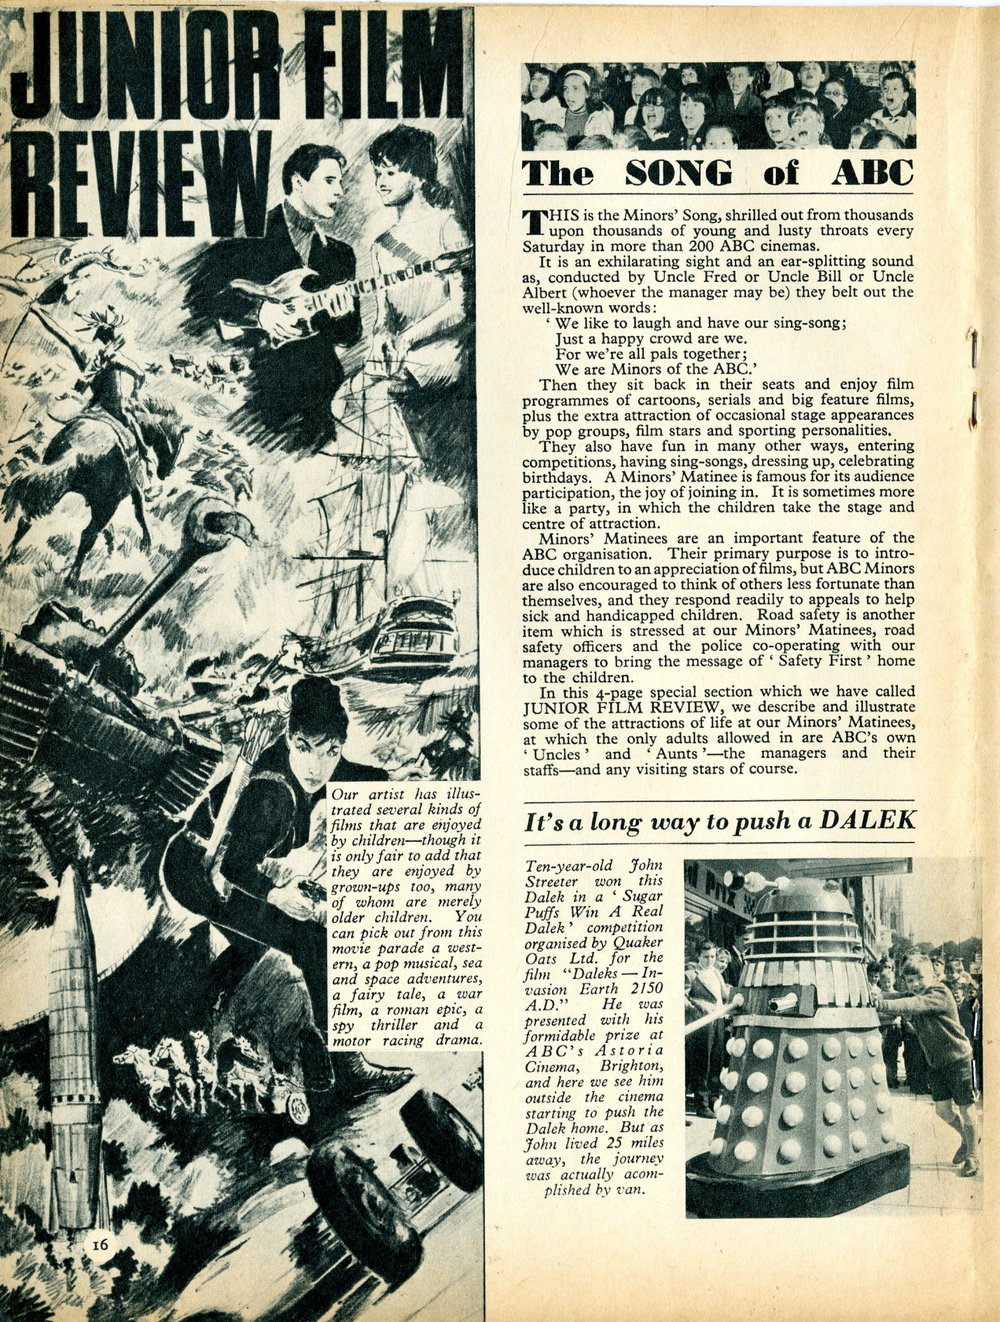 ABC Film Review, August 1967